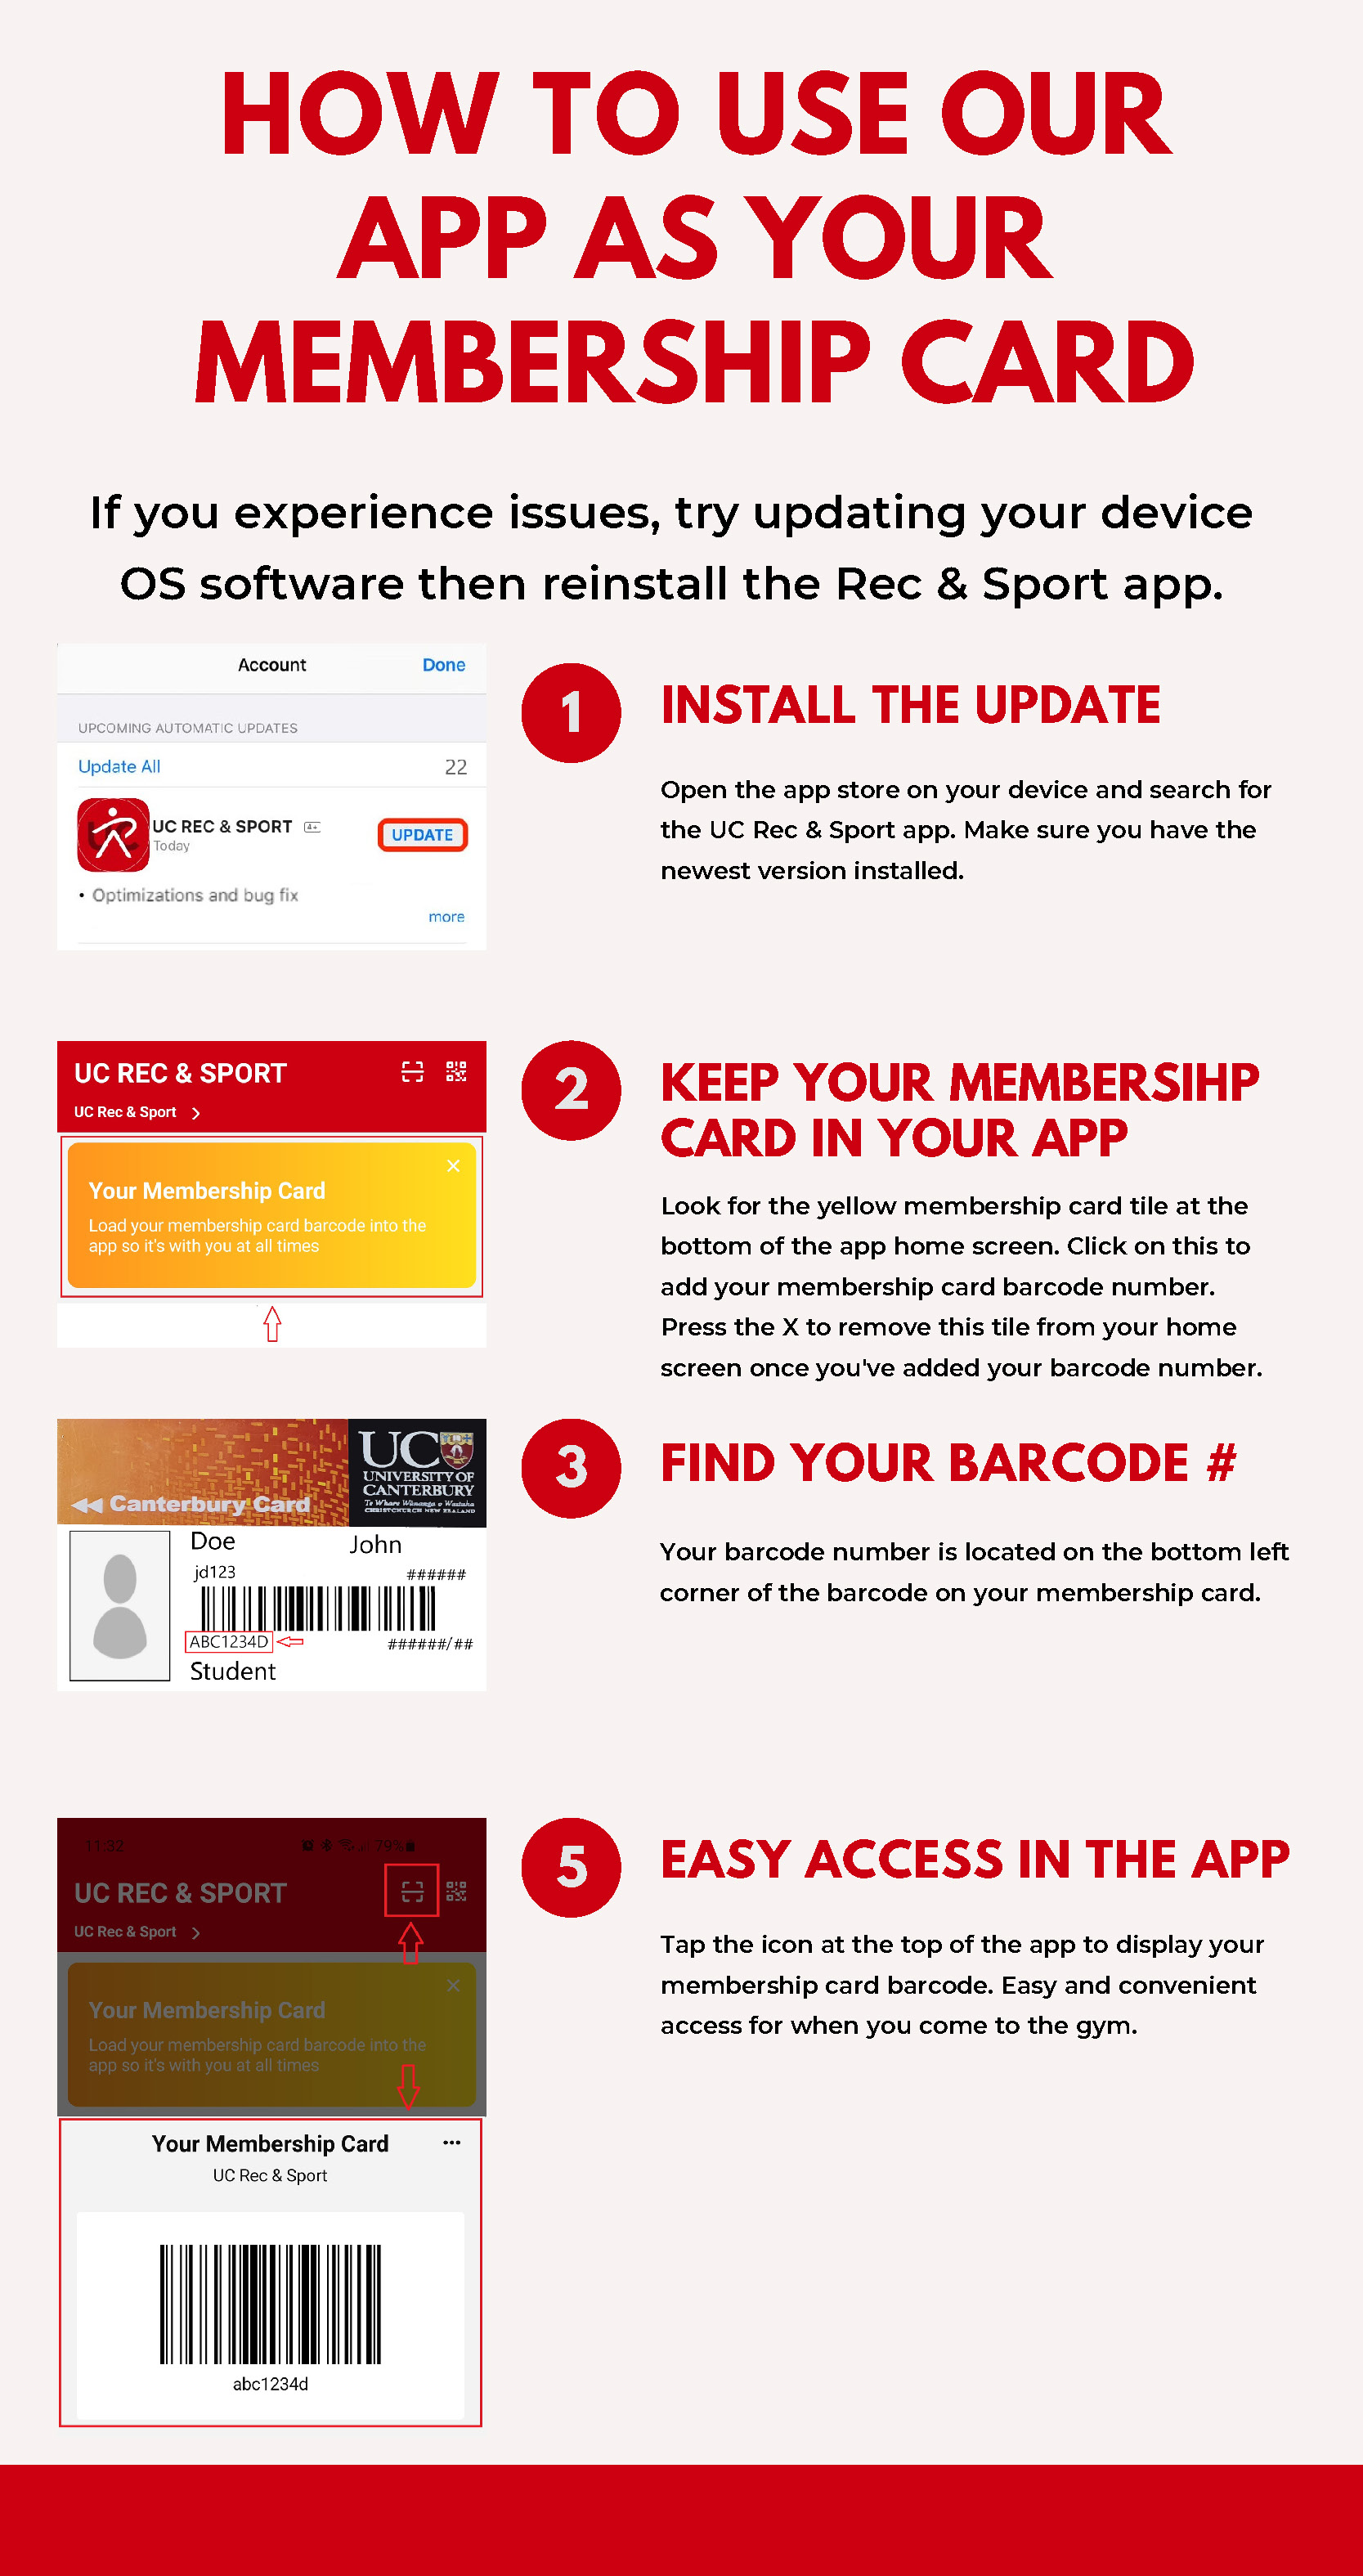 How to add your membership card to your app so you're never without your card when you come to the gym